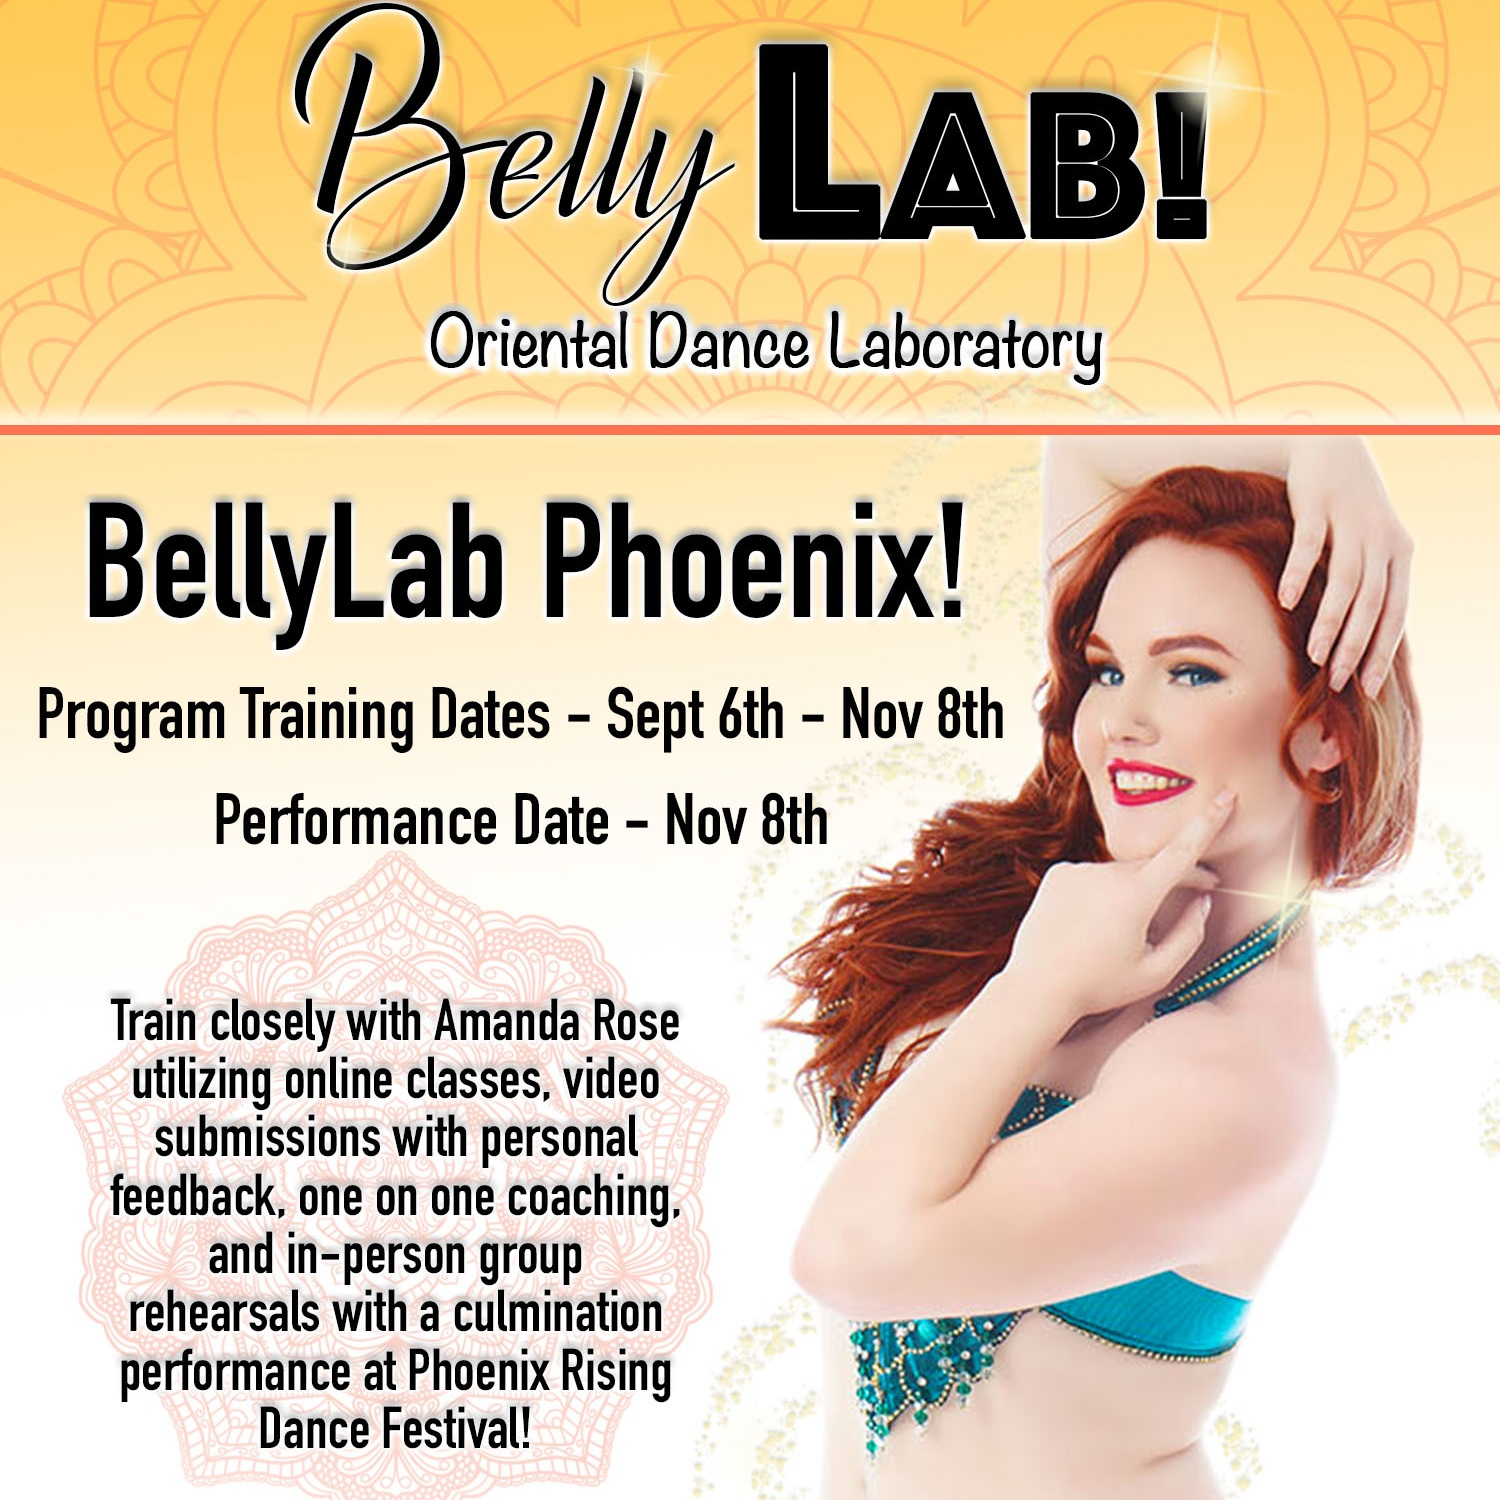 BellyLab Phoenix - BellyLab @ Phoenix Rising Dance FestivalPhoenix, AZ USAThis BellyLab project is a 2.5 month program that will culminate with a performance in the Phoenix Rising Dance Festival Gala Show! More info coming soon!